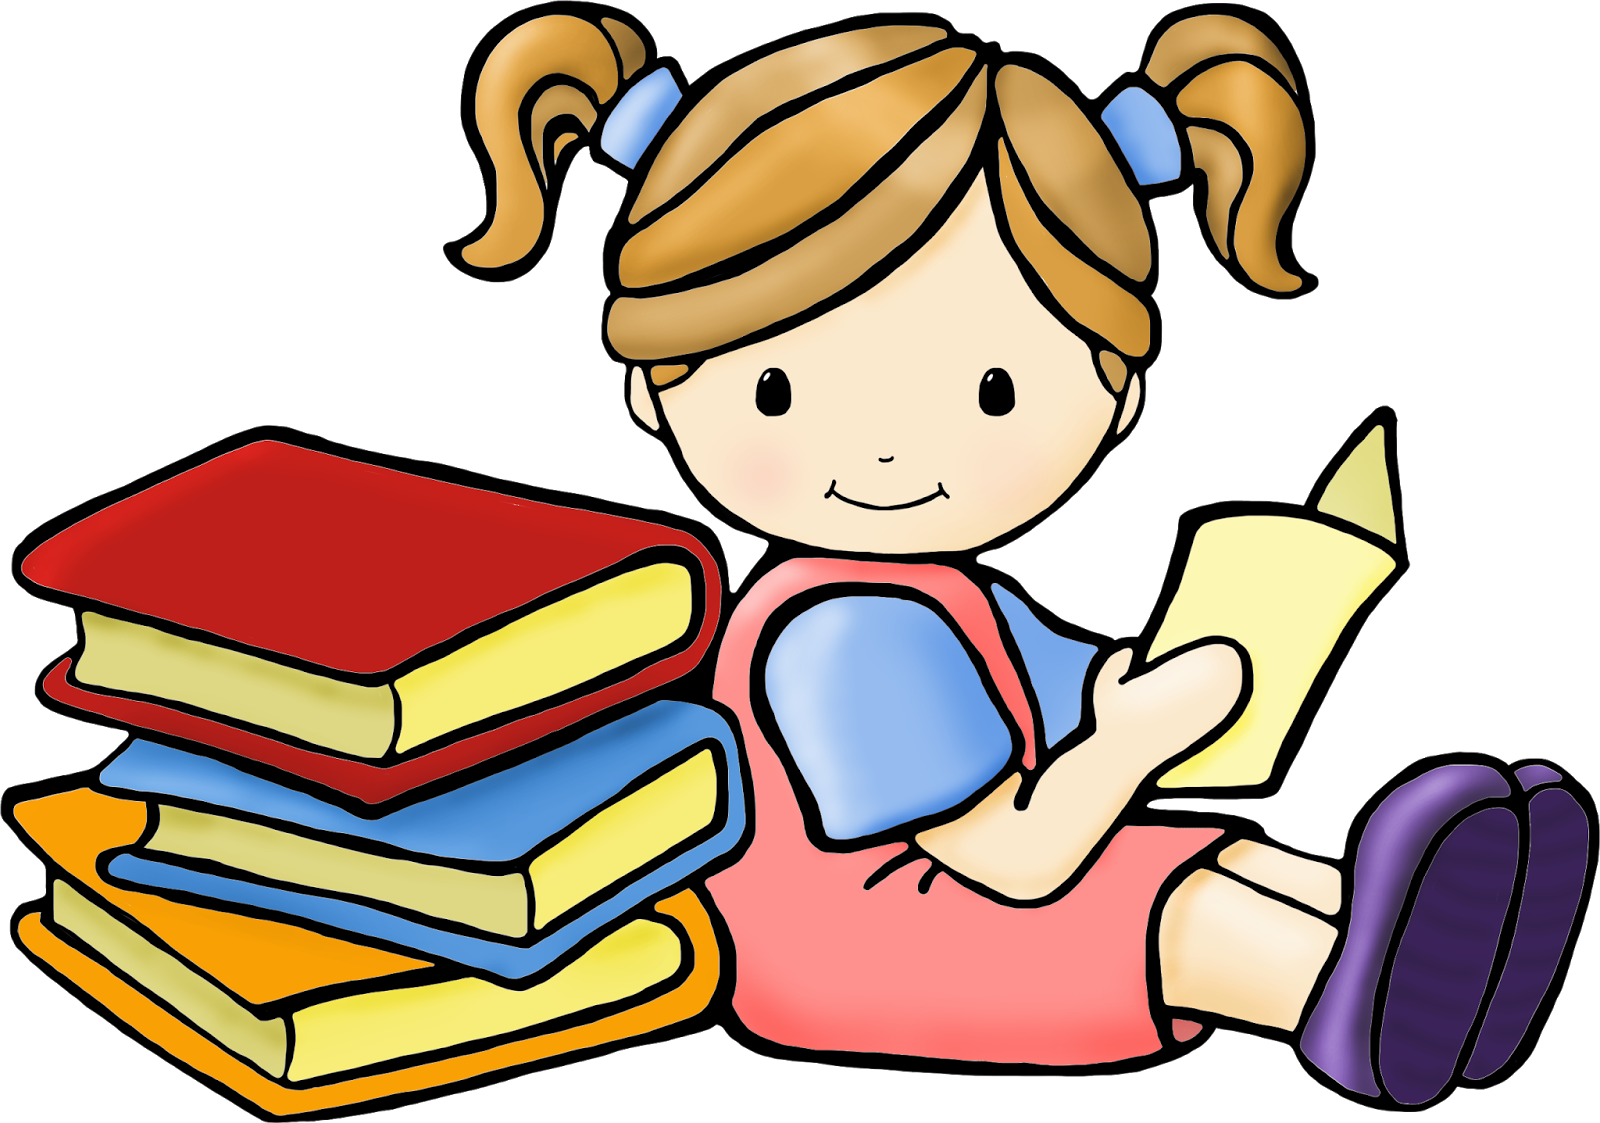 Children with books clipart clipart library download Children reading books clip art - ClipartFest clipart library download